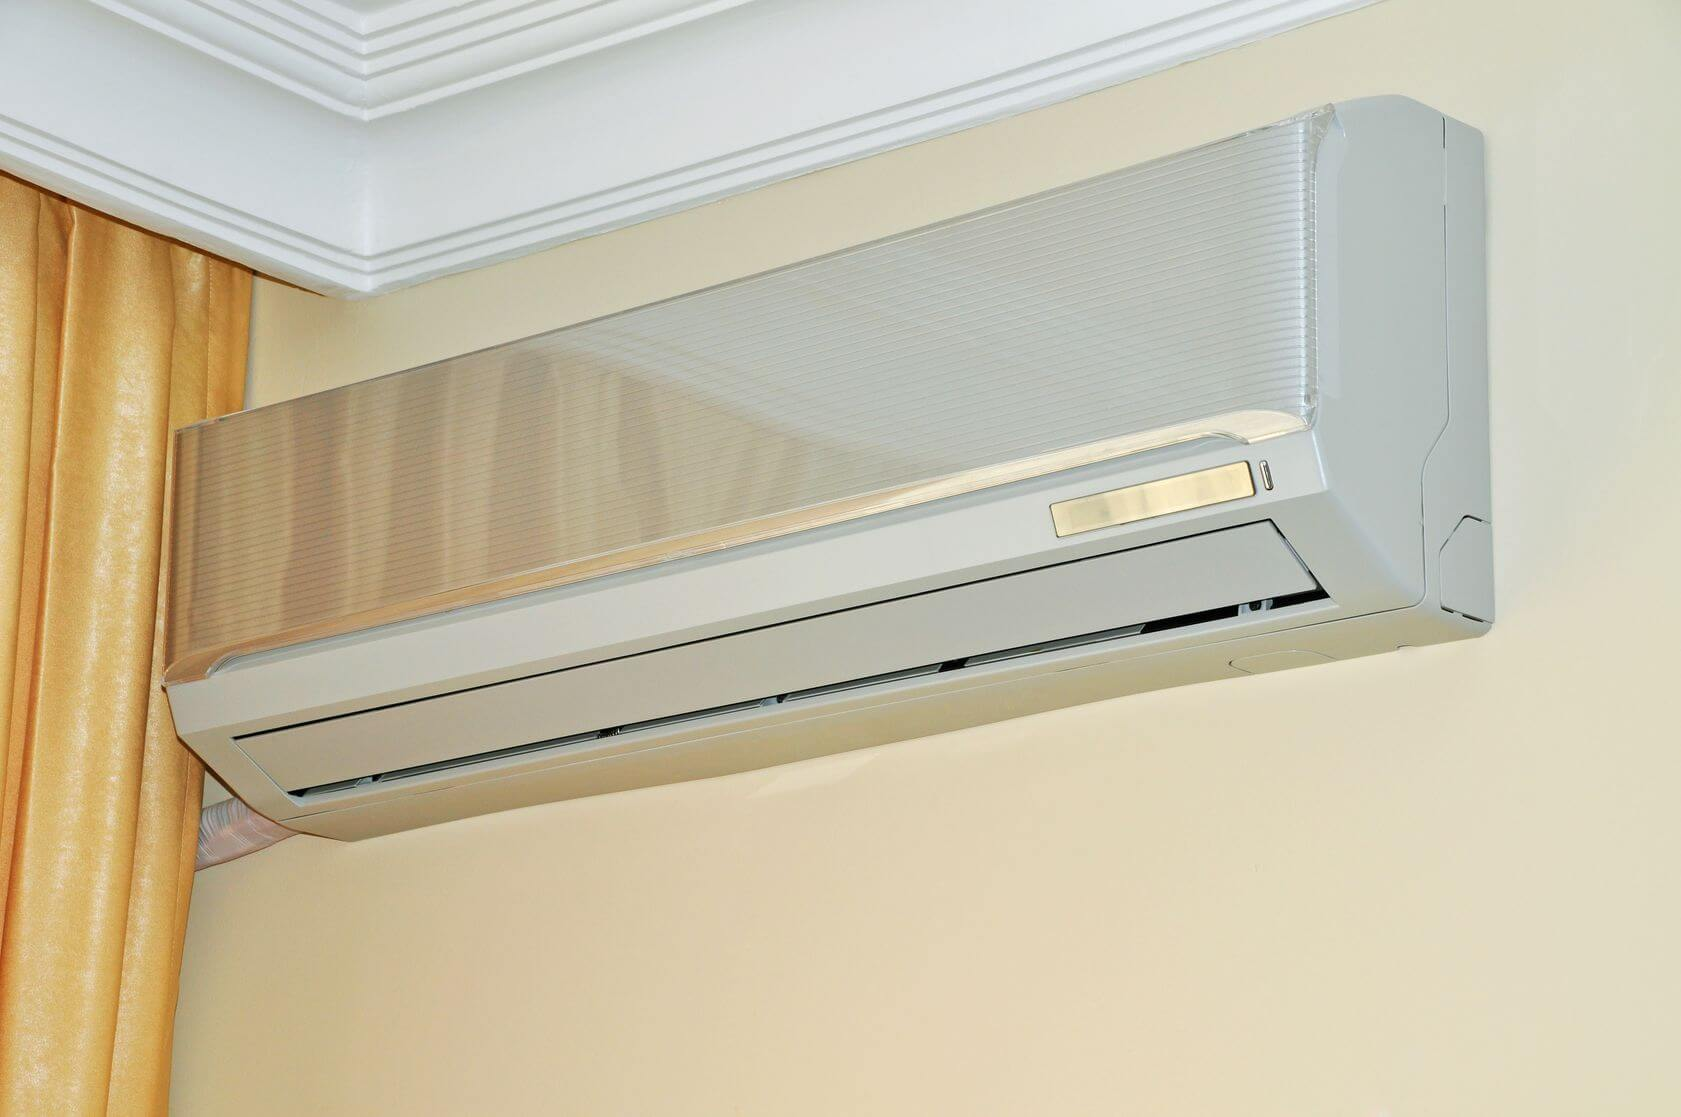 5 Benefits Of A Ductless Air Conditioner System Enlighten Me